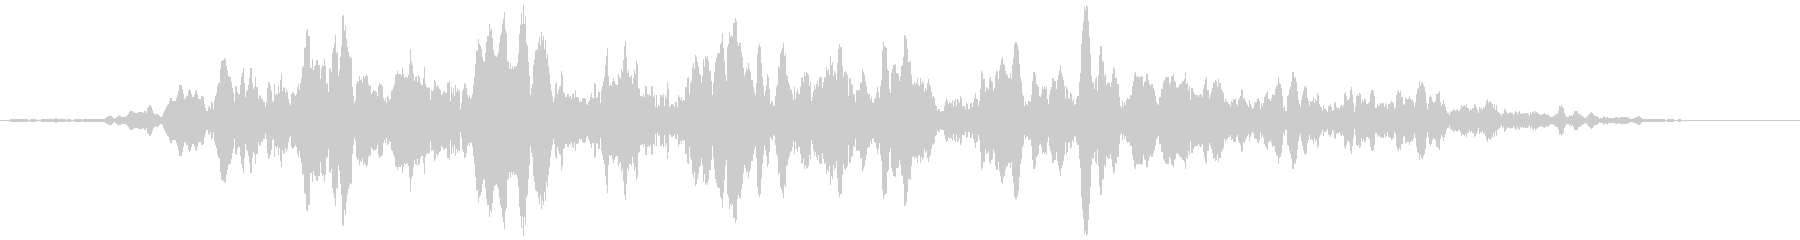 Cuu waler (universe is a mystery 2)'s unreproduced waveform